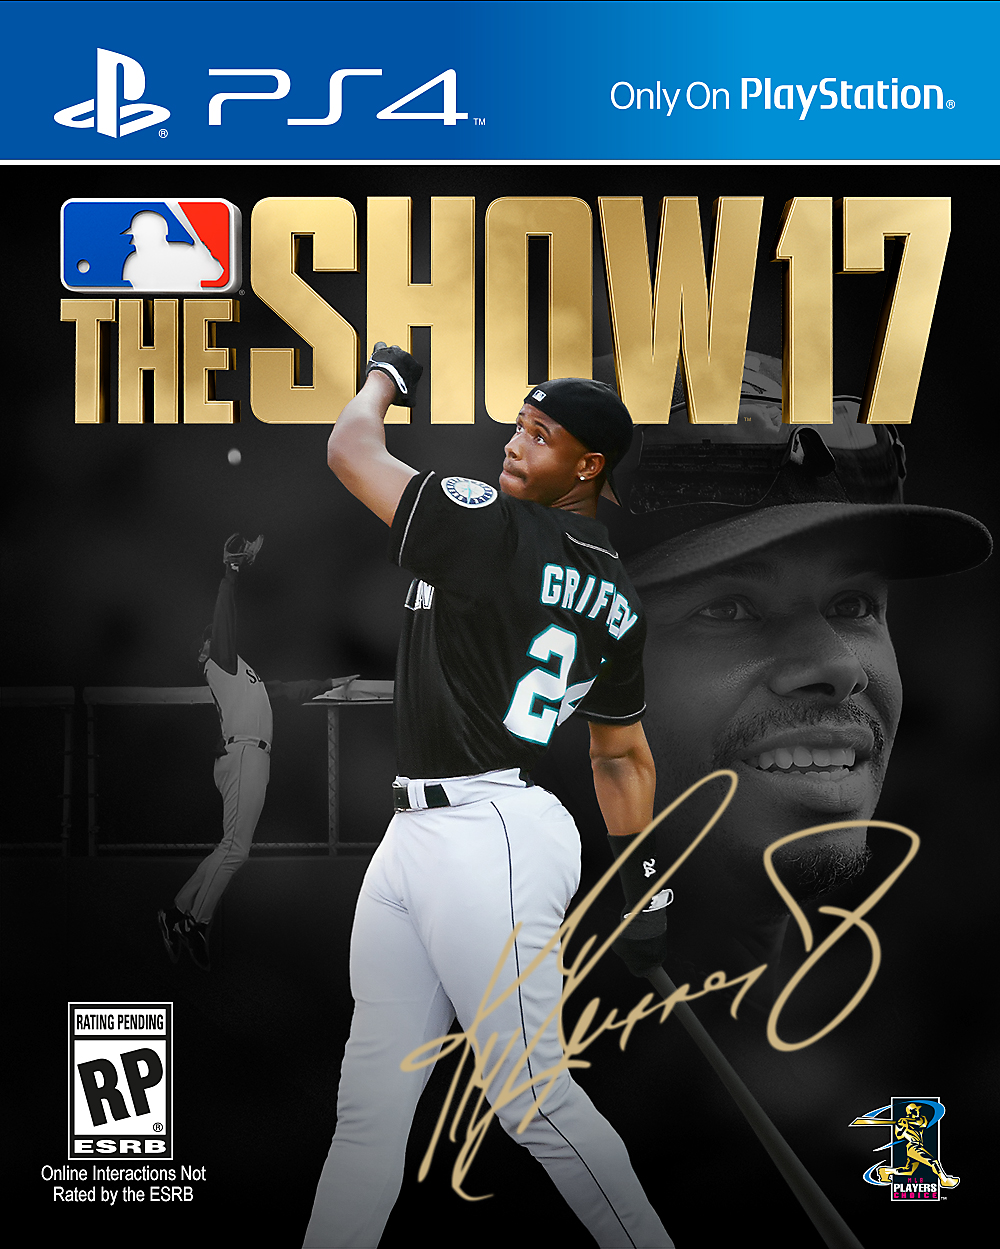 MLB The Show 17 - PS4 Pro